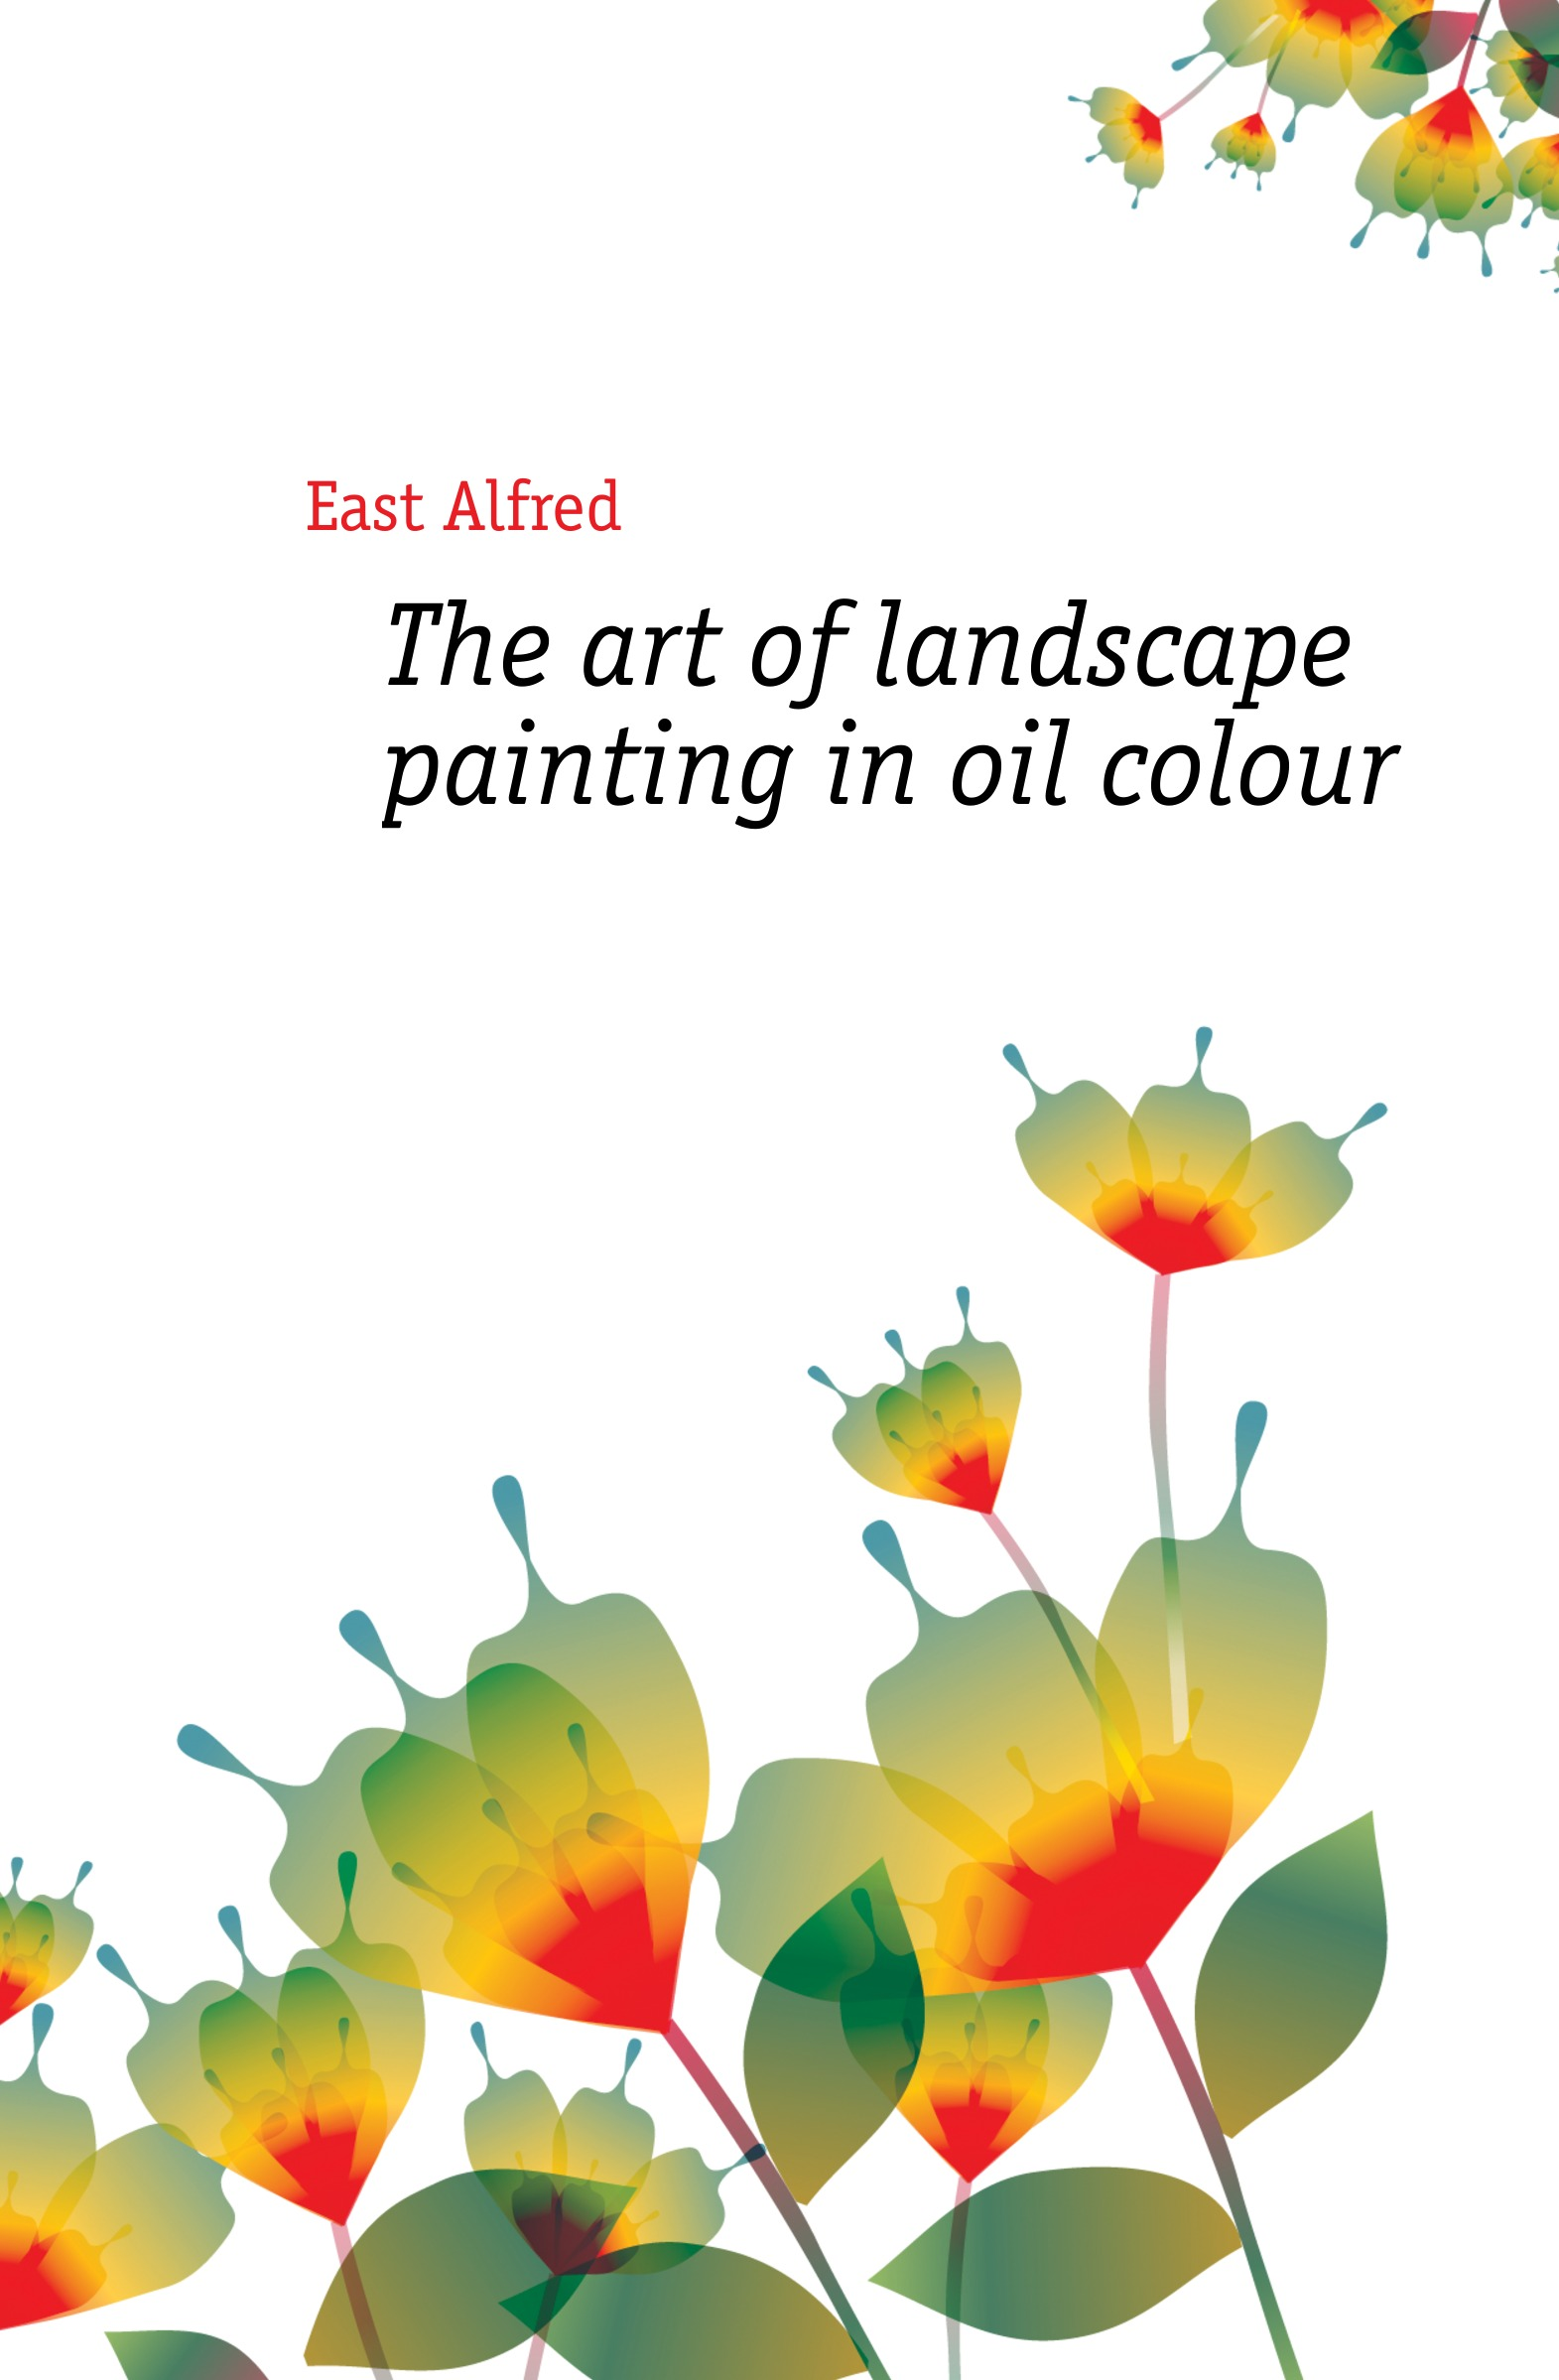 East Alfred The art of landscape painting in oil colour oil painting floral wall art tapestry